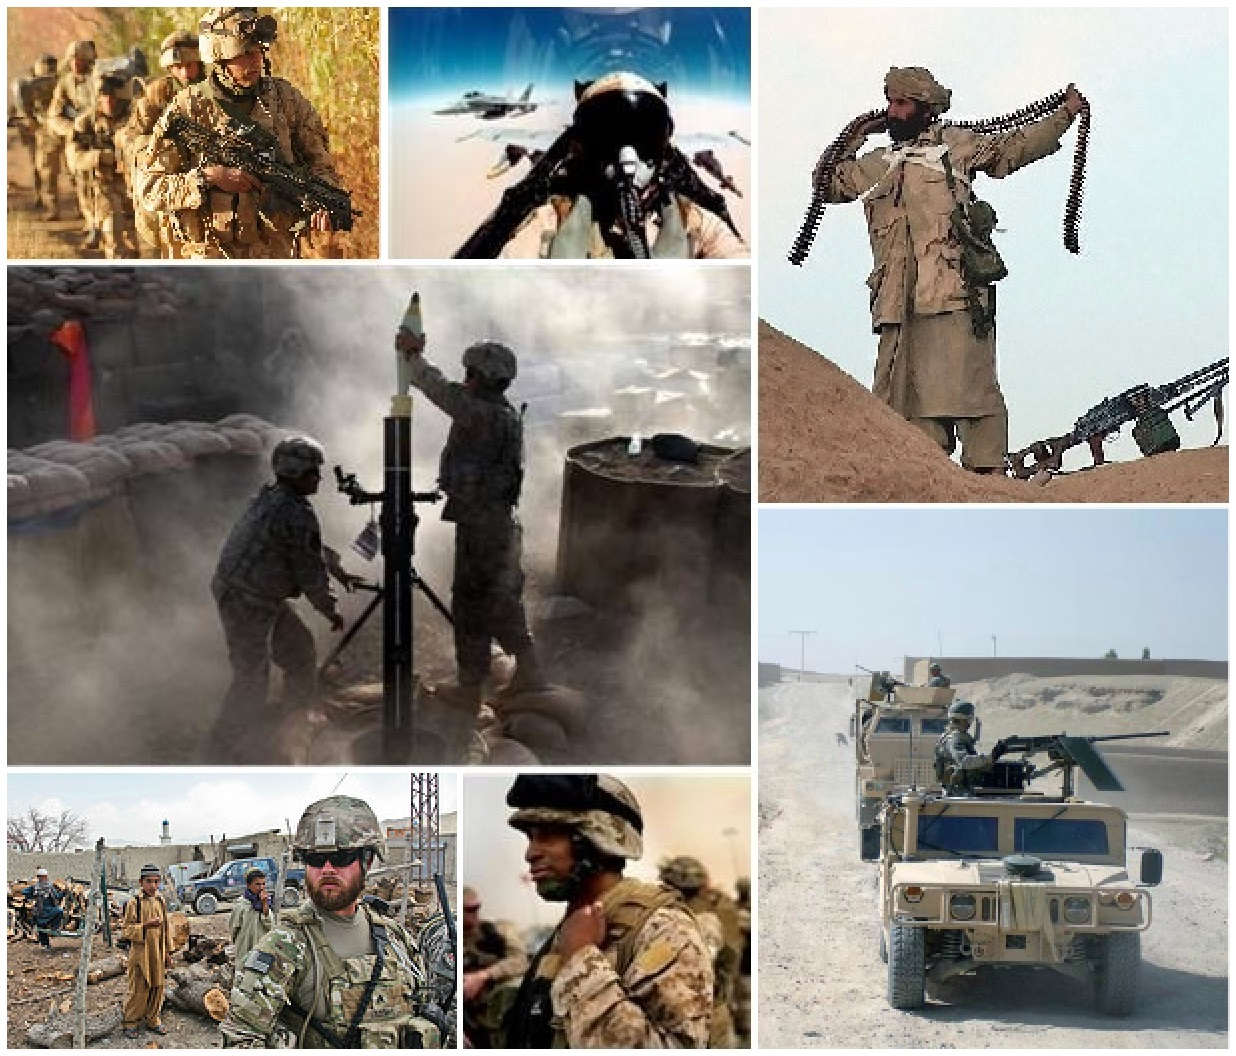 File:2001 War in Afghanistan collage 3.jpg